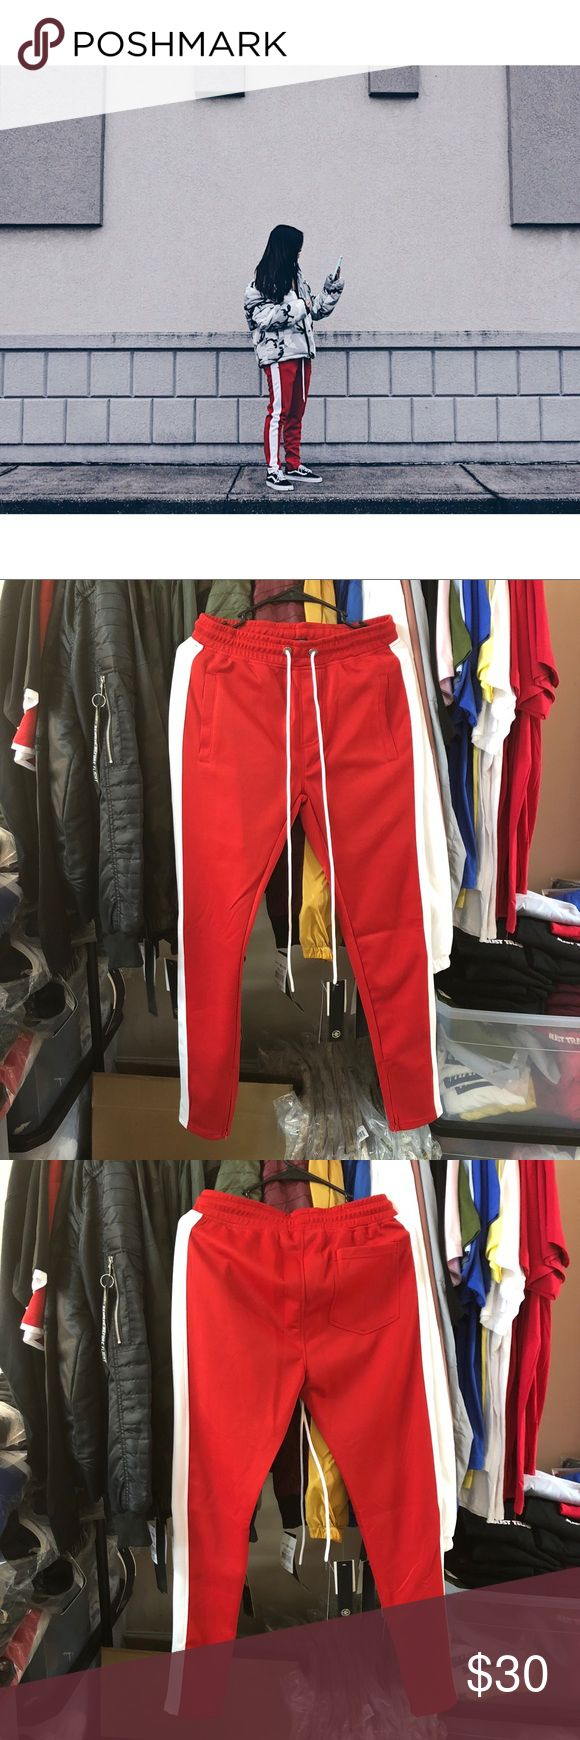 "Track Pants - Red/White Bleecker & Mercer 95% Polyester 5% Spandex   Zipper at the Ankles Model 5'4 1/2"" 120 lbs wearing a size small True to Size Size Up For a Looser Fit Manufacturer's Suggested Retail Price: $69.99 Pants Sweatpants & Joggers"